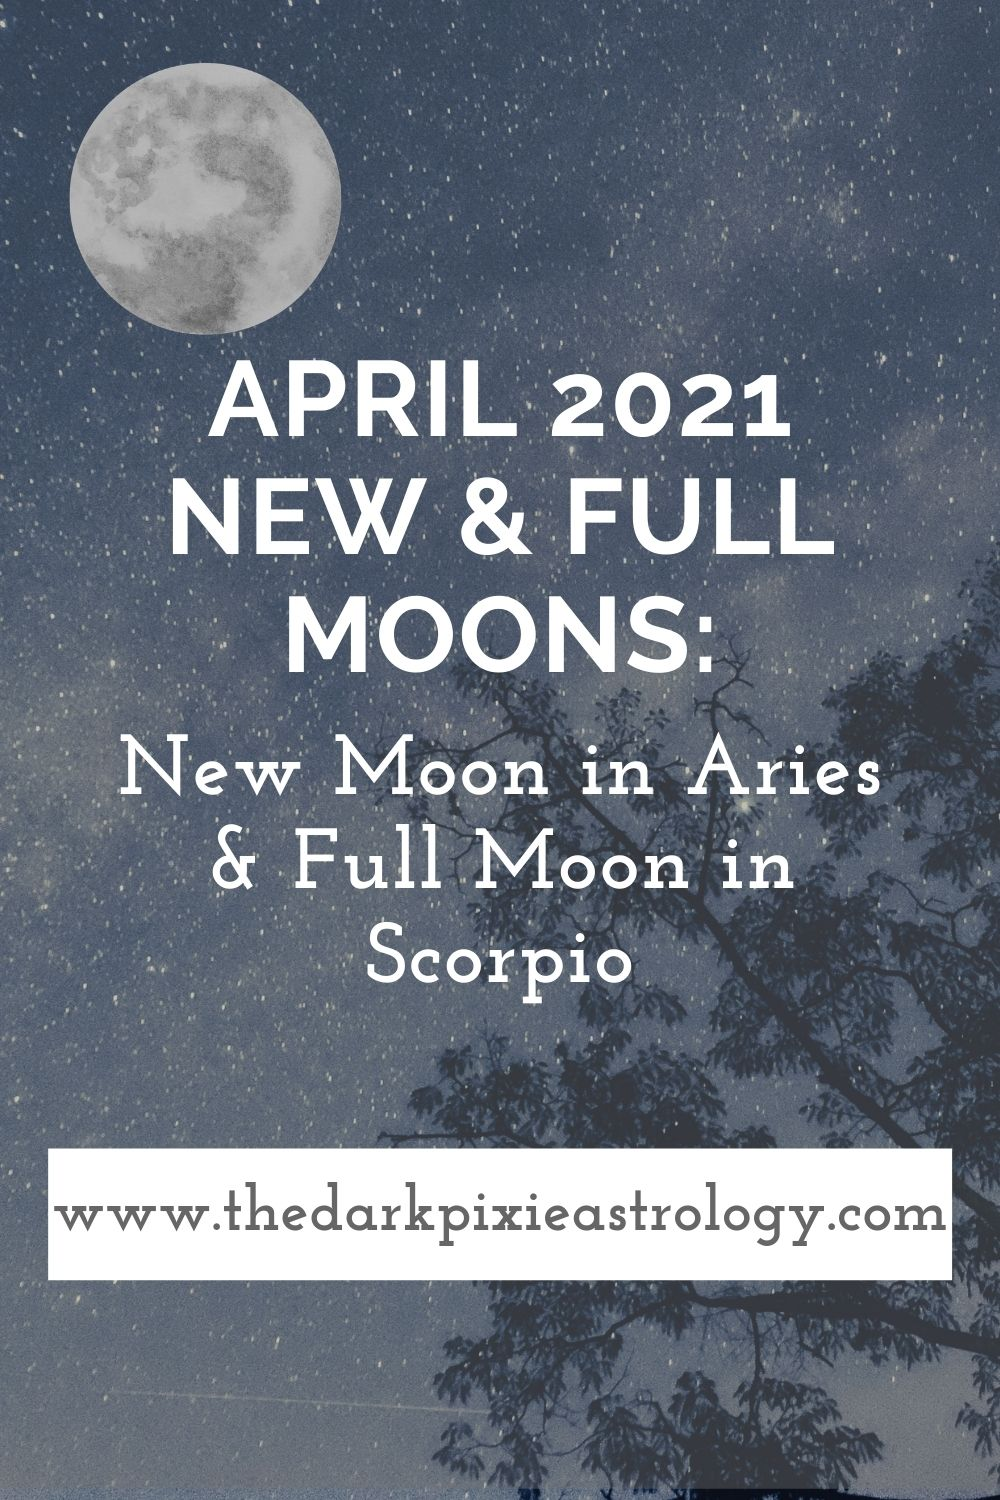 April 2021 New & Full Moons: New Moon in Aries & Full Moon in Scorpio - The Dark Pixie Astrology